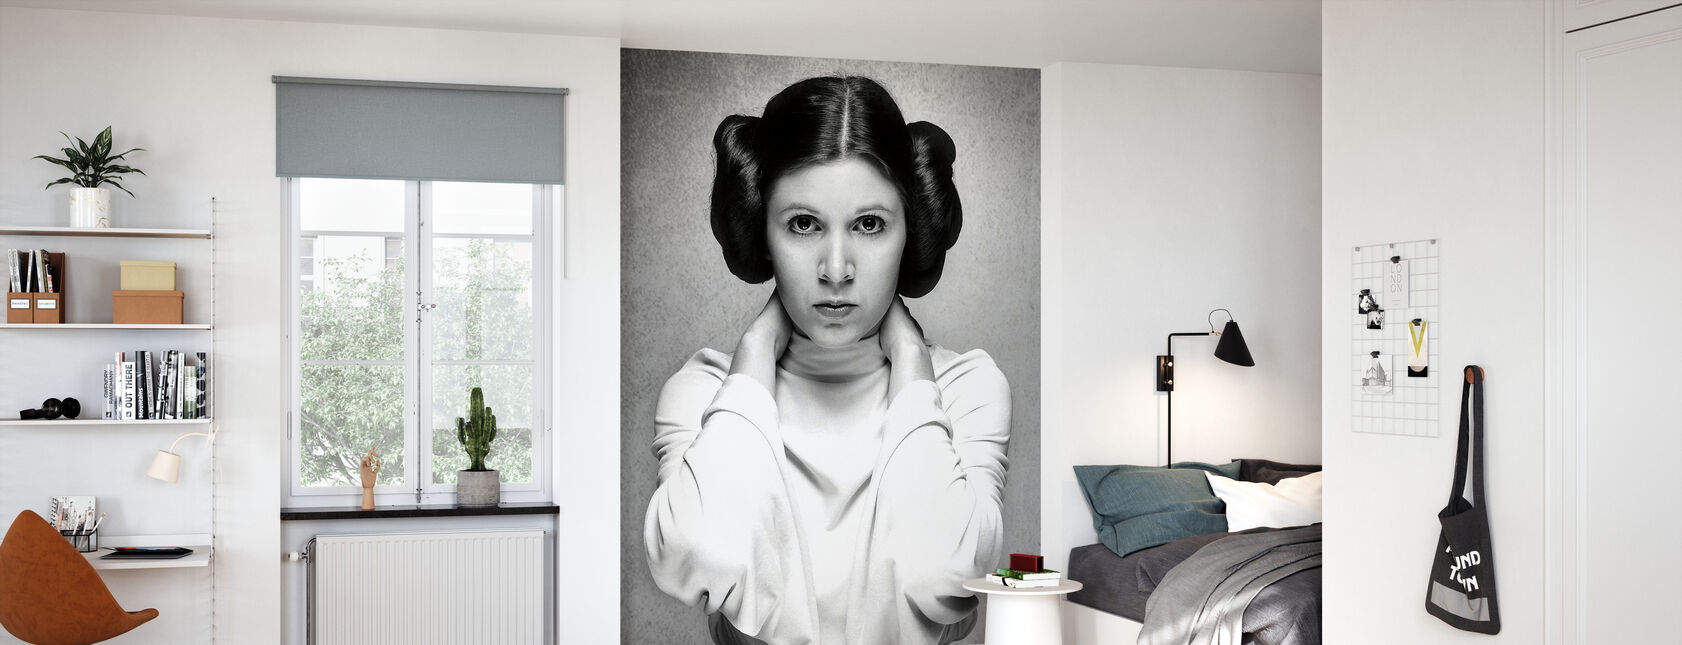 Prinsesse Leia - Carrie Fisher - Tapet - Barnerom